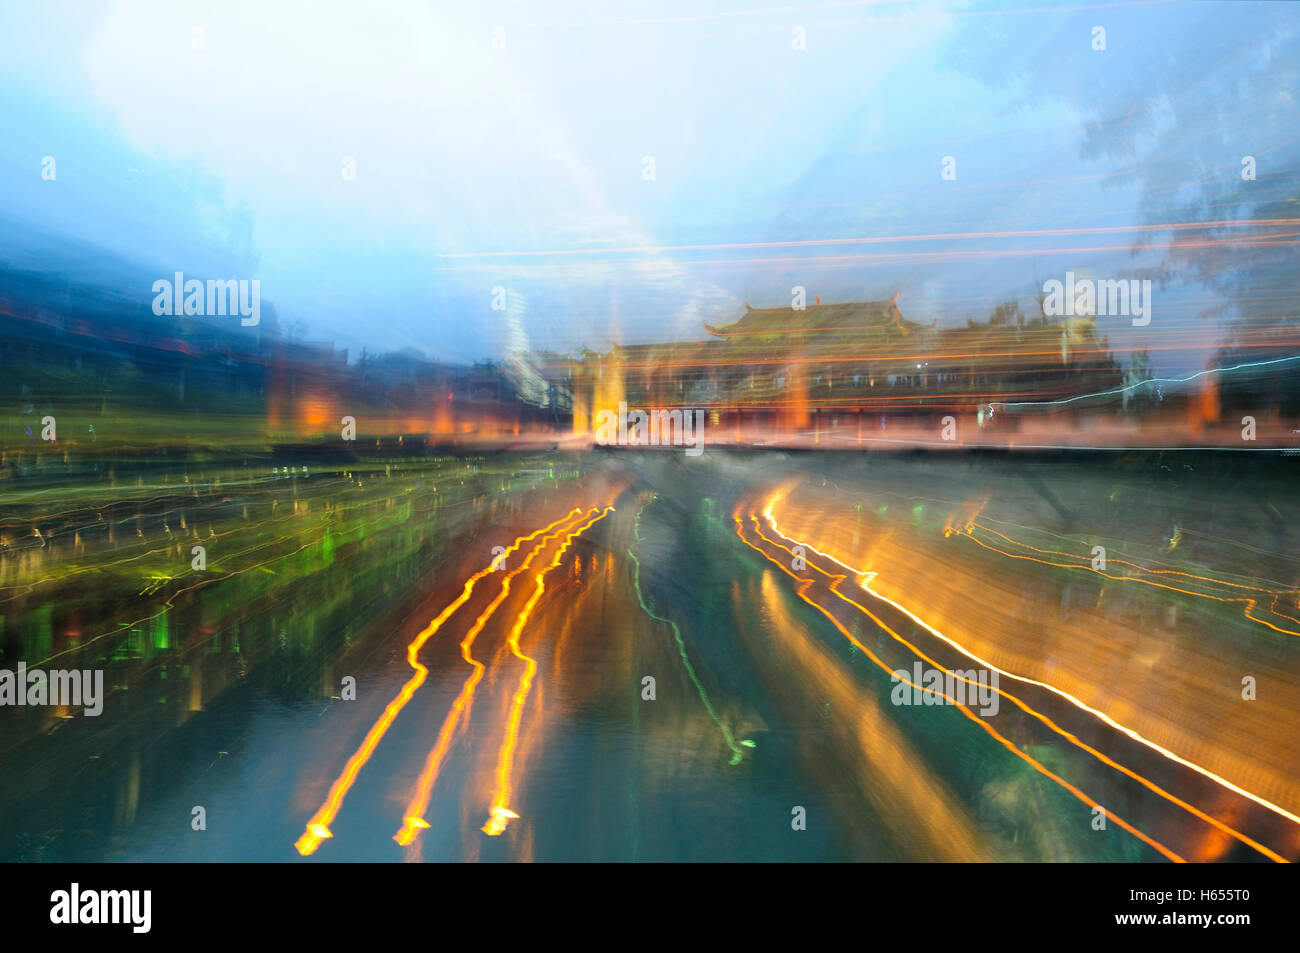 An abstract image of the Hongqiao landmark with blurred lights in the village of Fenghuang in Hunan Province China. - Stock Image